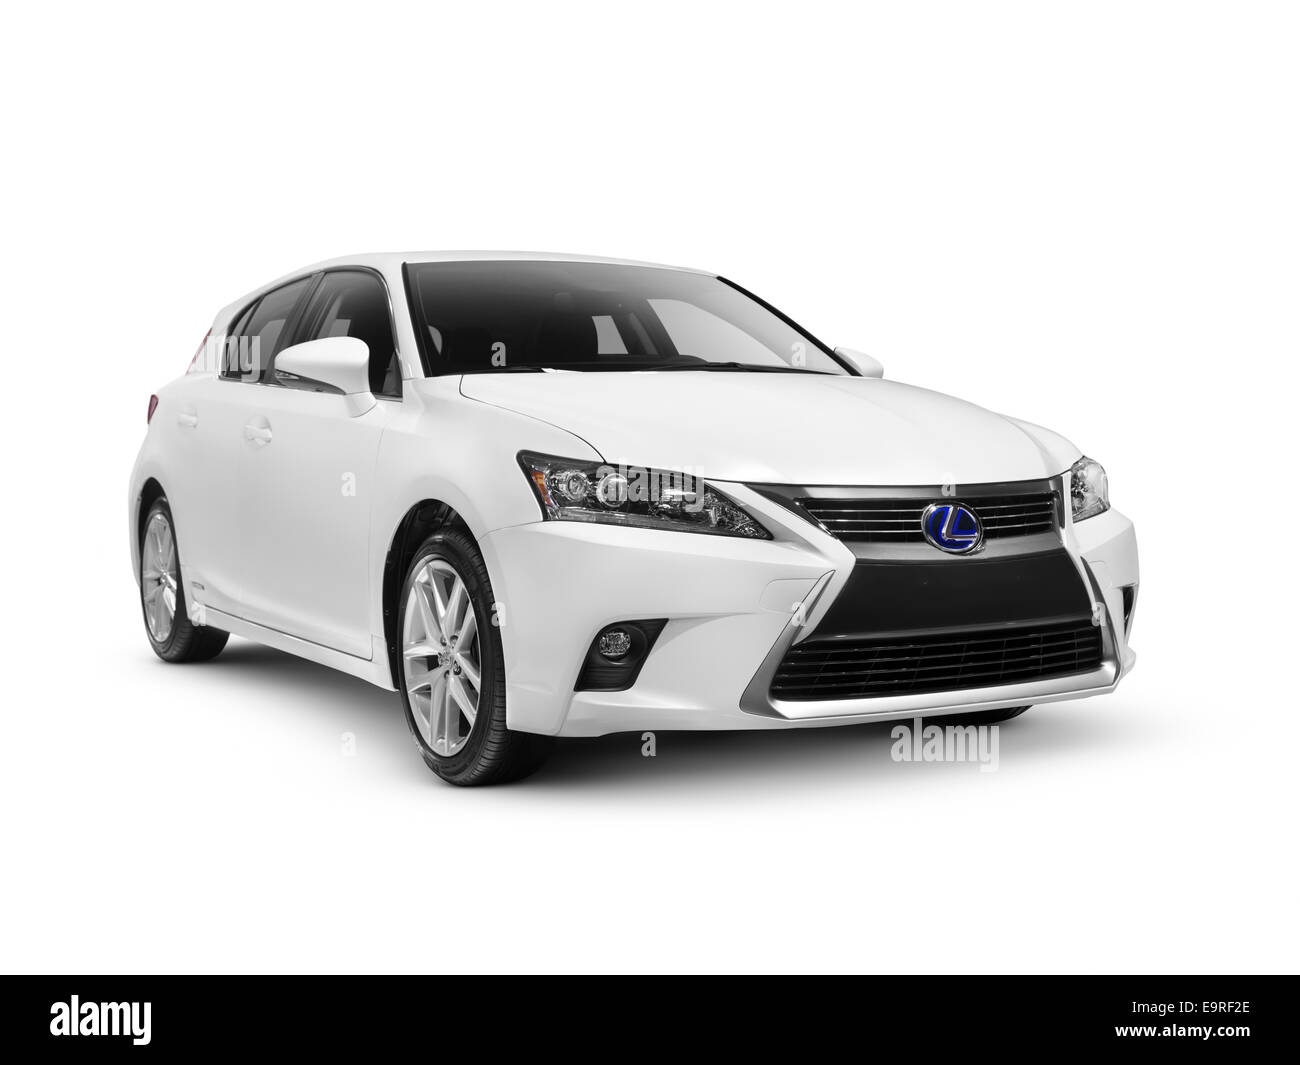 White 2014 Lexus CT 200h hybride de luxe voiture berline compacte isolé sur fond blanc avec clipping path Photo Stock